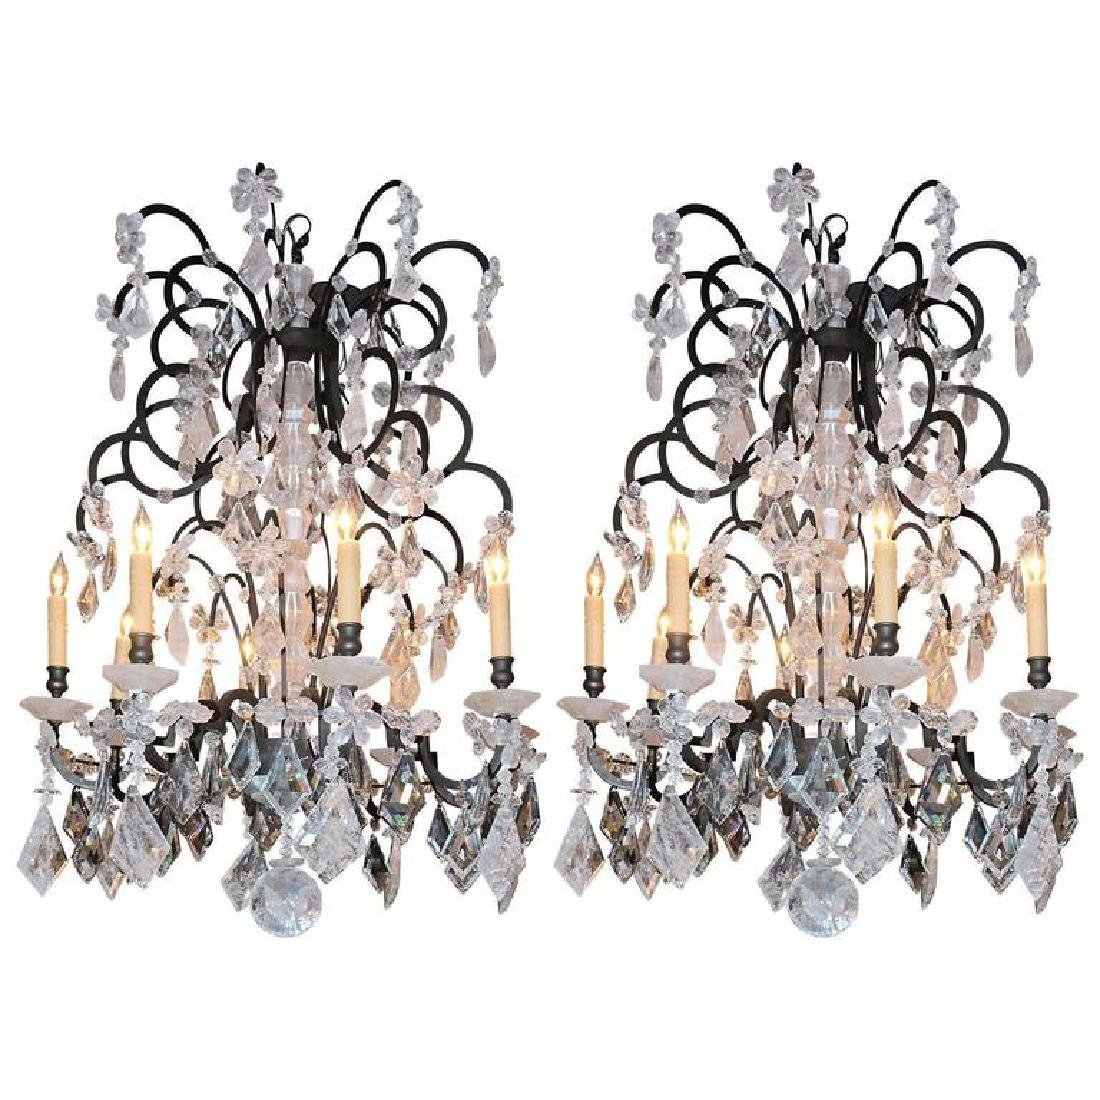 Pair of Modern Rock Crystal Chandliers